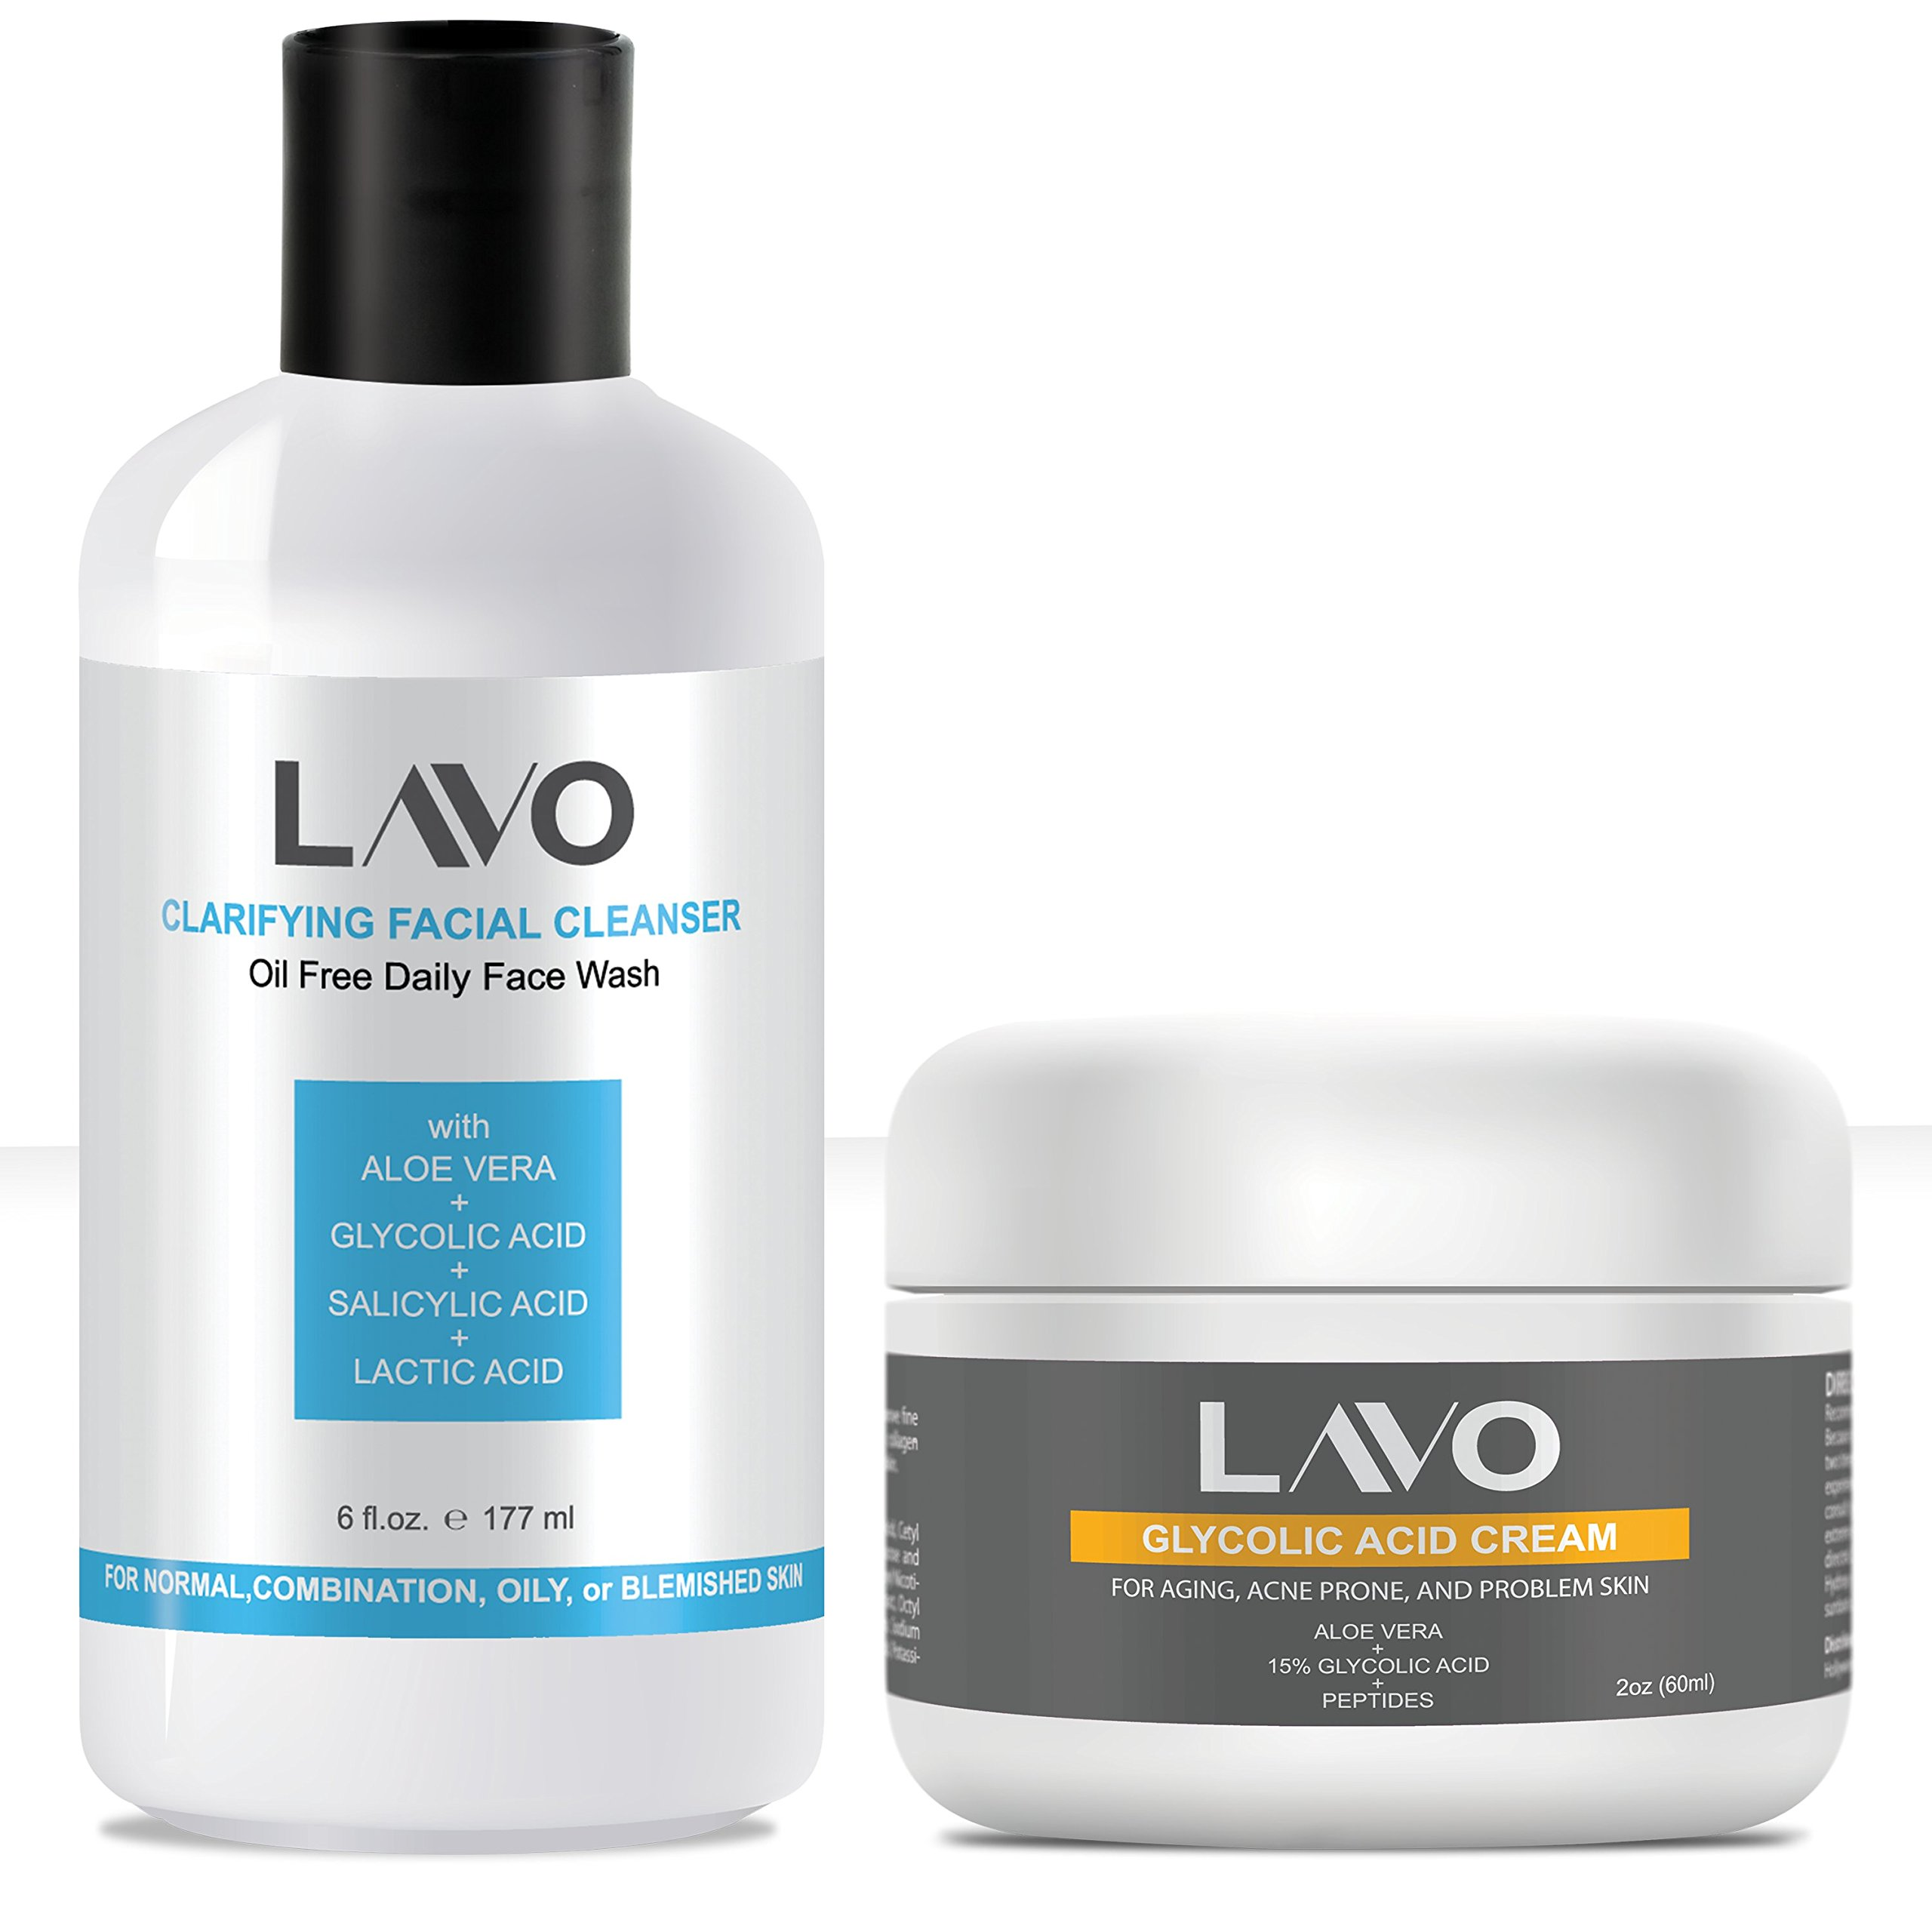 BEST Glycolic Acid Face Wash (10%) & Face Moisturizer for Oily, Acne Prone, Combination, and Sensitive Skin (2 pack Bundle) - by LAVO (Cleanser + Daily Moisturizer Cream)